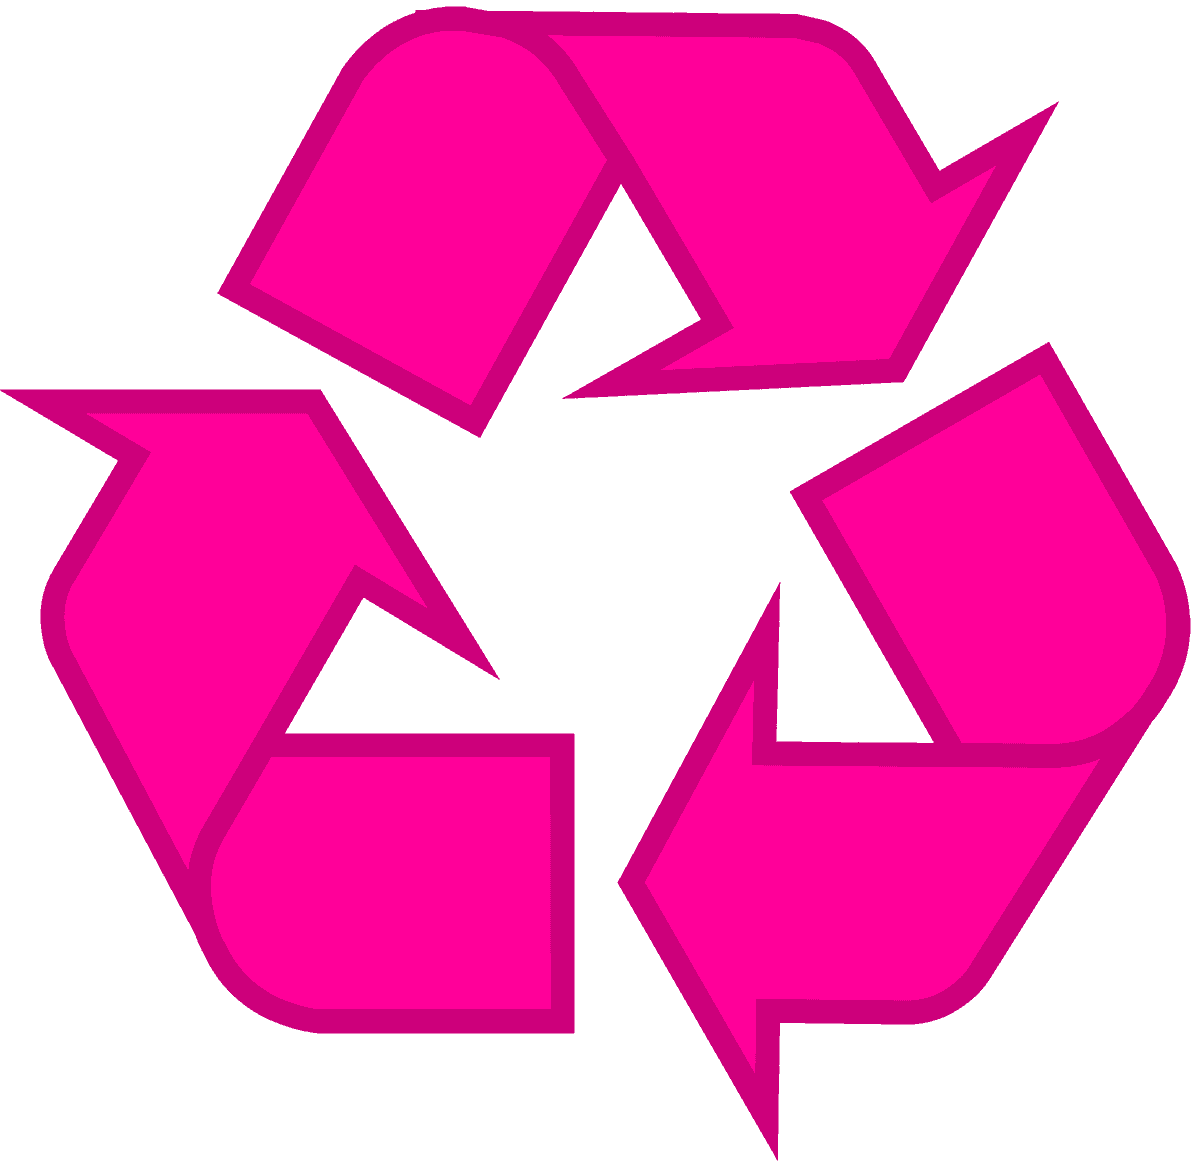 recycling-symbol-icon-outline-solid-magenta